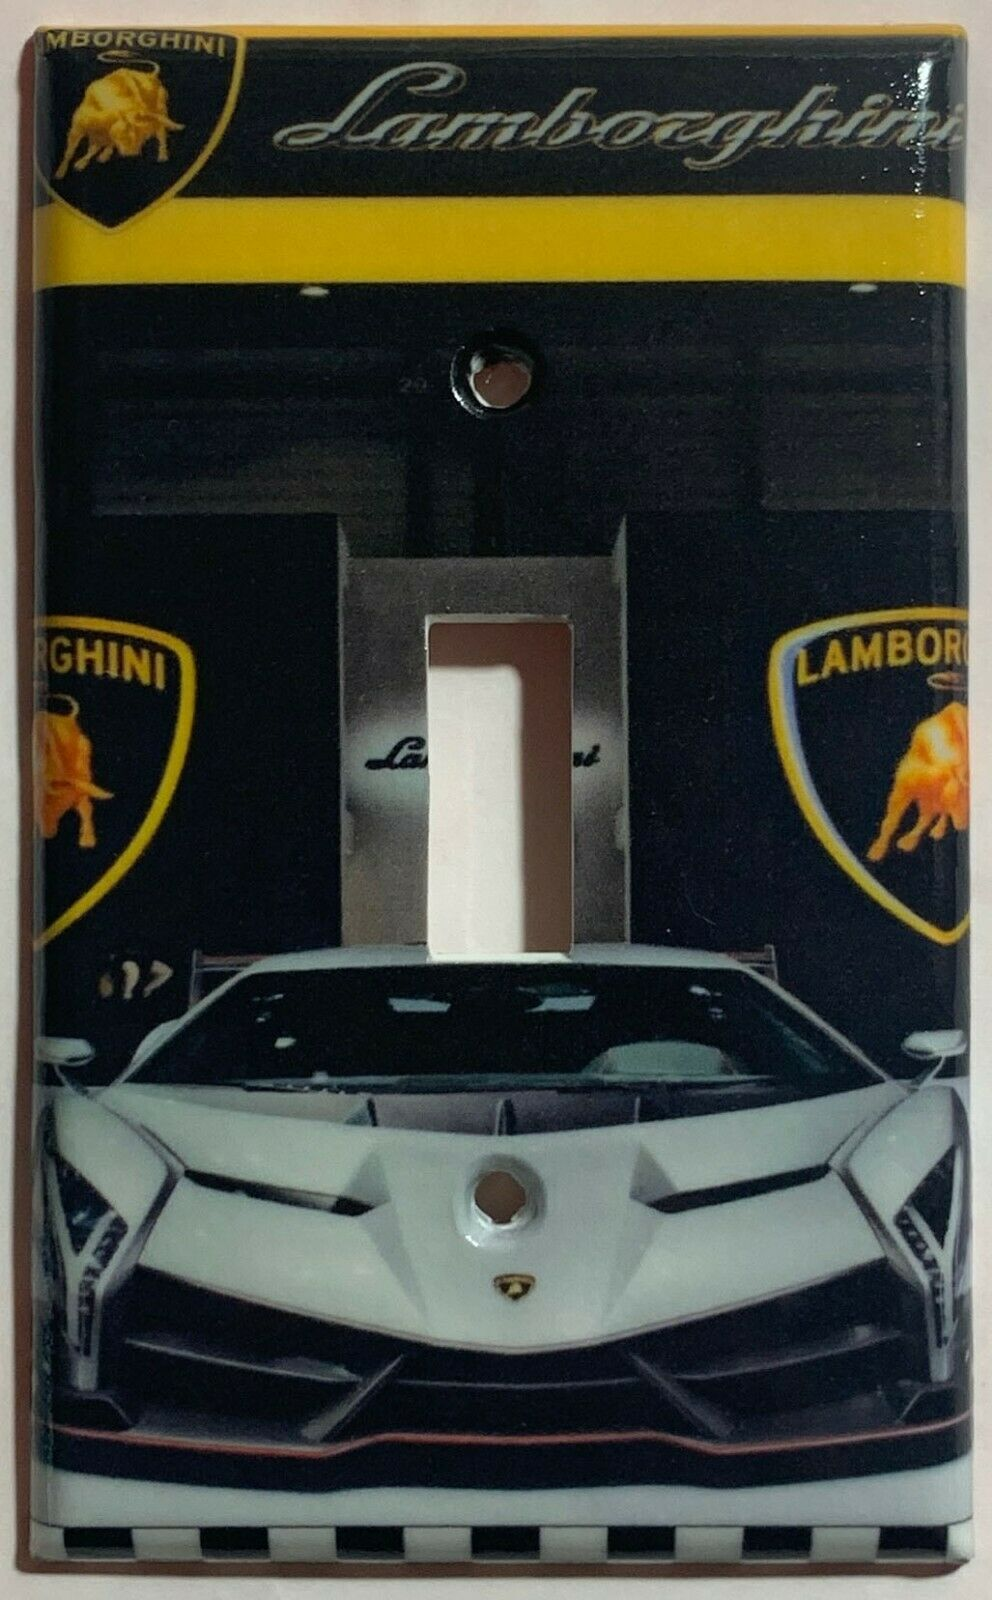 Lamborghini auto sport car Light Switch Power outlet Wall Cover Plate Home decor